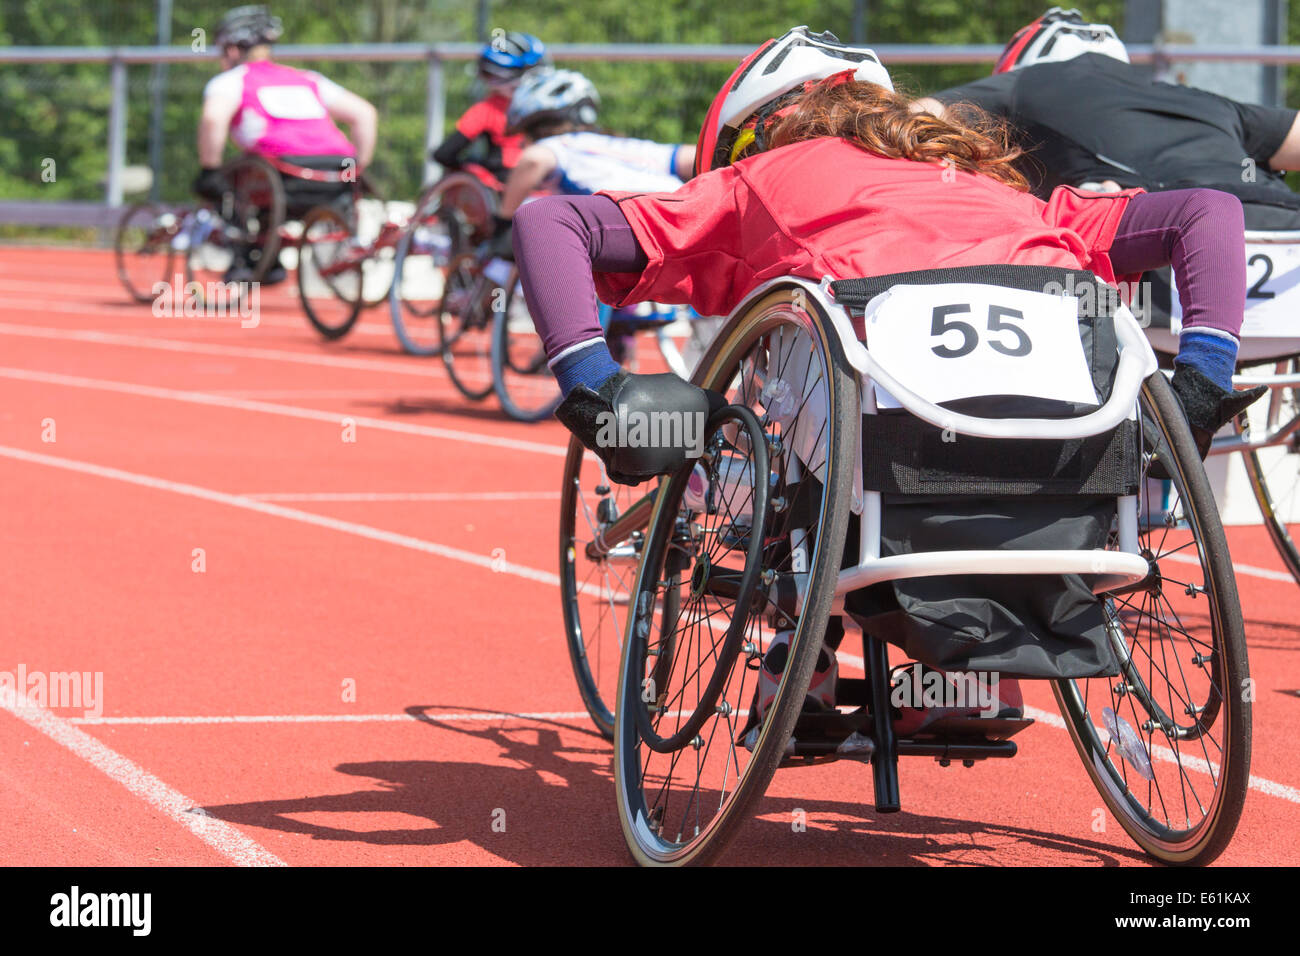 Athletes  at a wheelchair race in a stadium - Stock Image